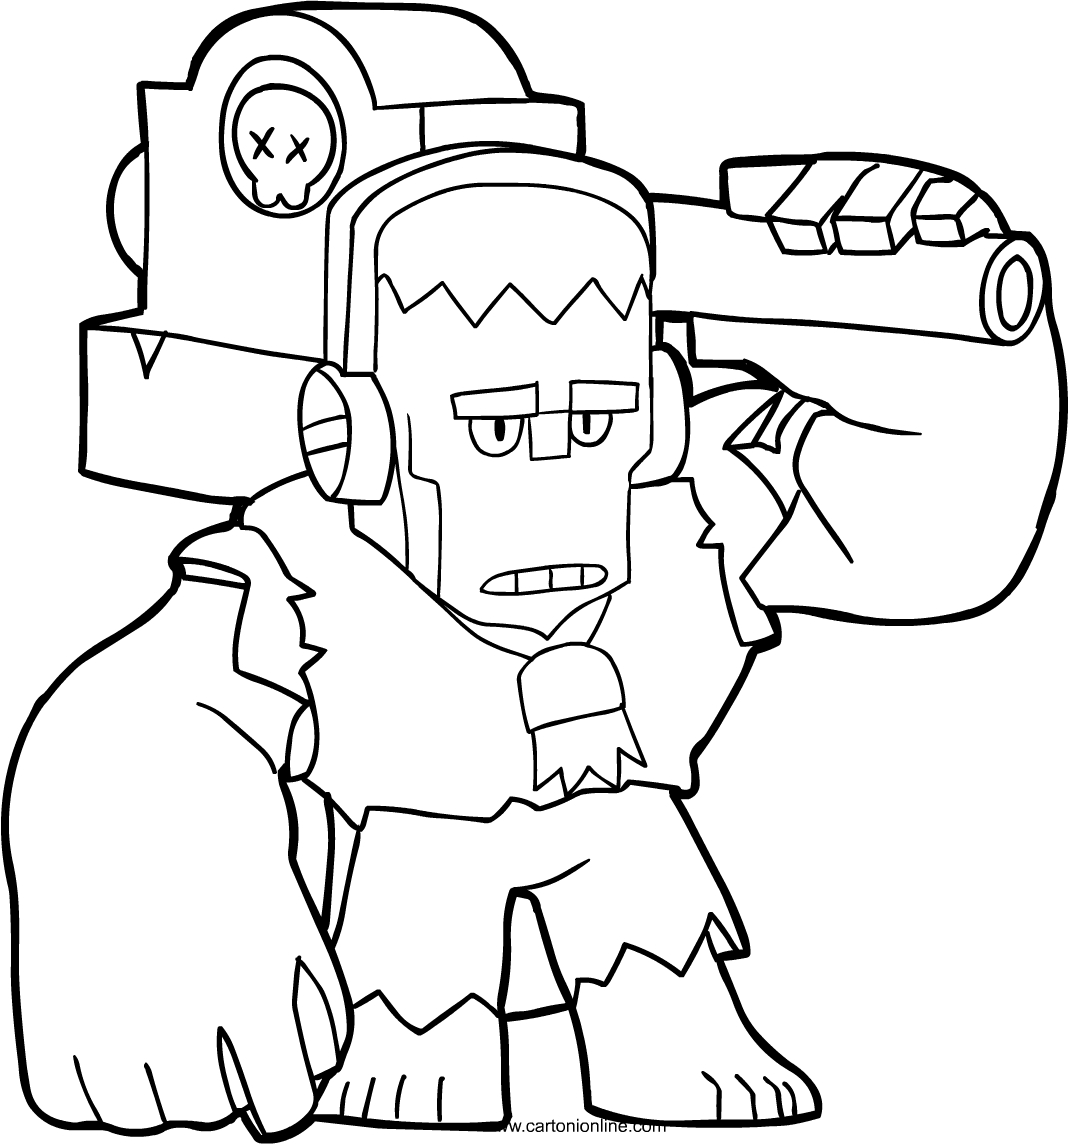 Frank From Brawl Stars Coloring Page